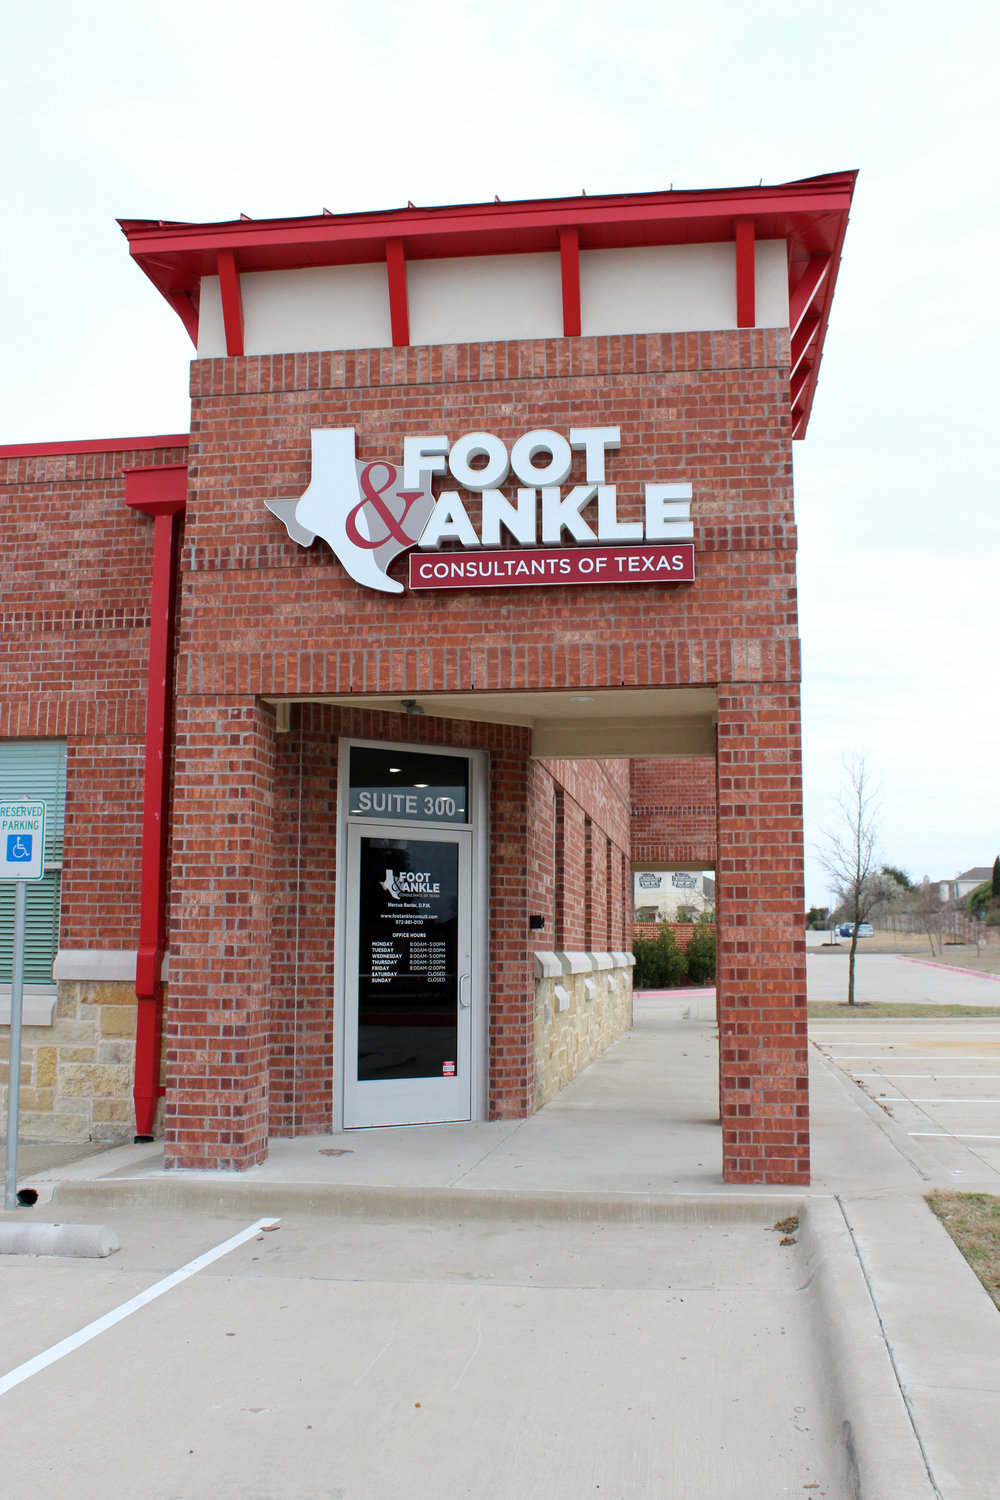 Foot & Ankle Consultants of Texas opened on Feb. 4, 2019.